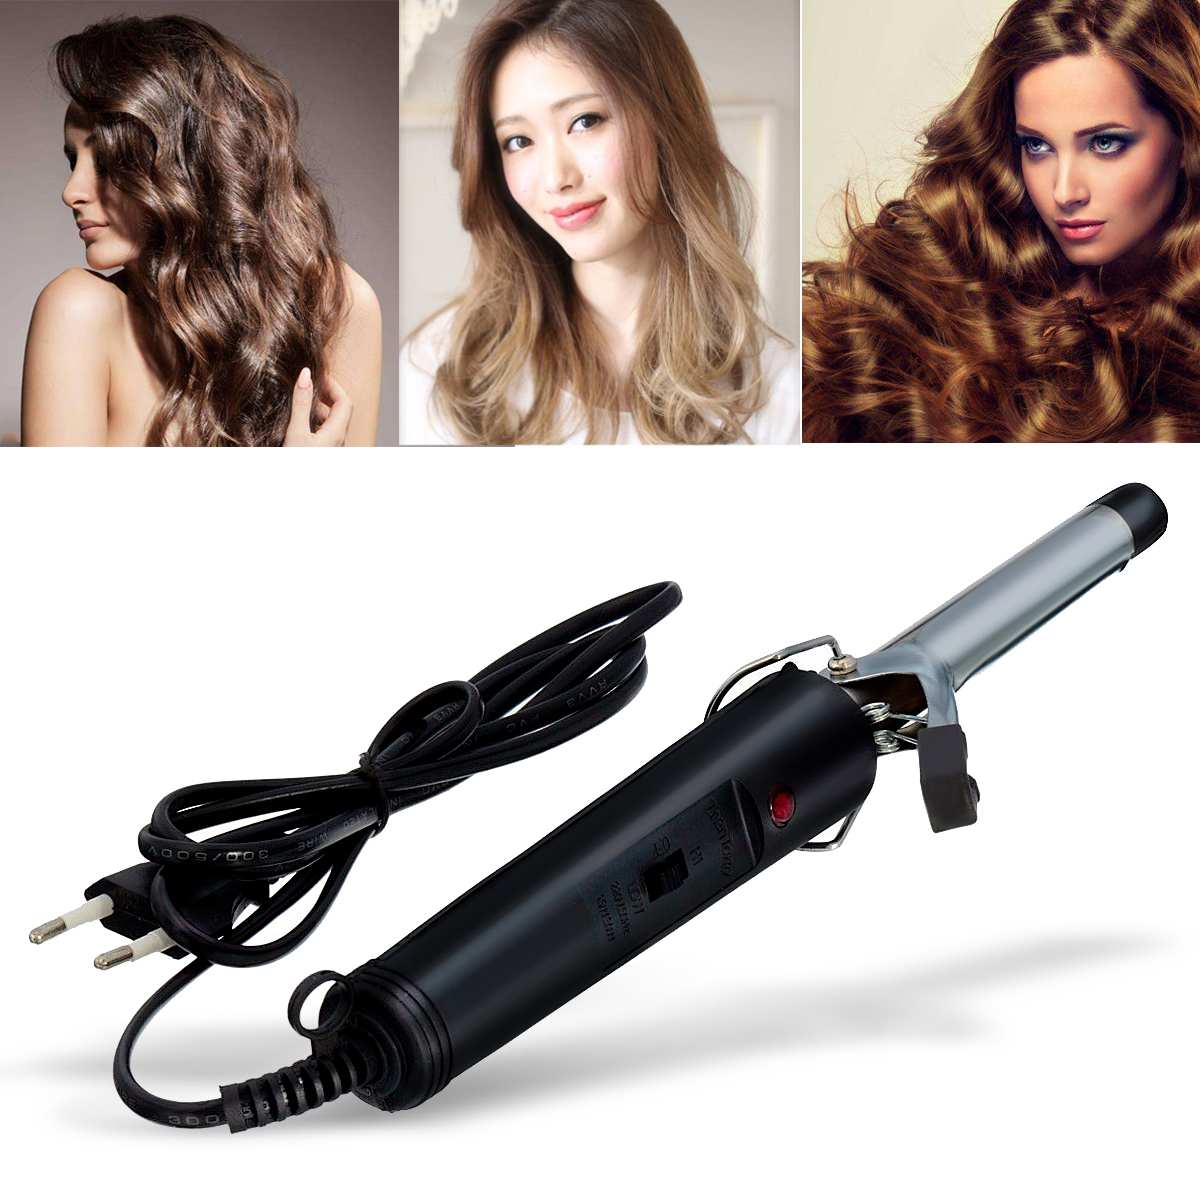 Professional Hair Curling Irons Useful Hair Salon Volume Curl Curling Iron Hair Curler Waver Maker Hair Care Styling Machine